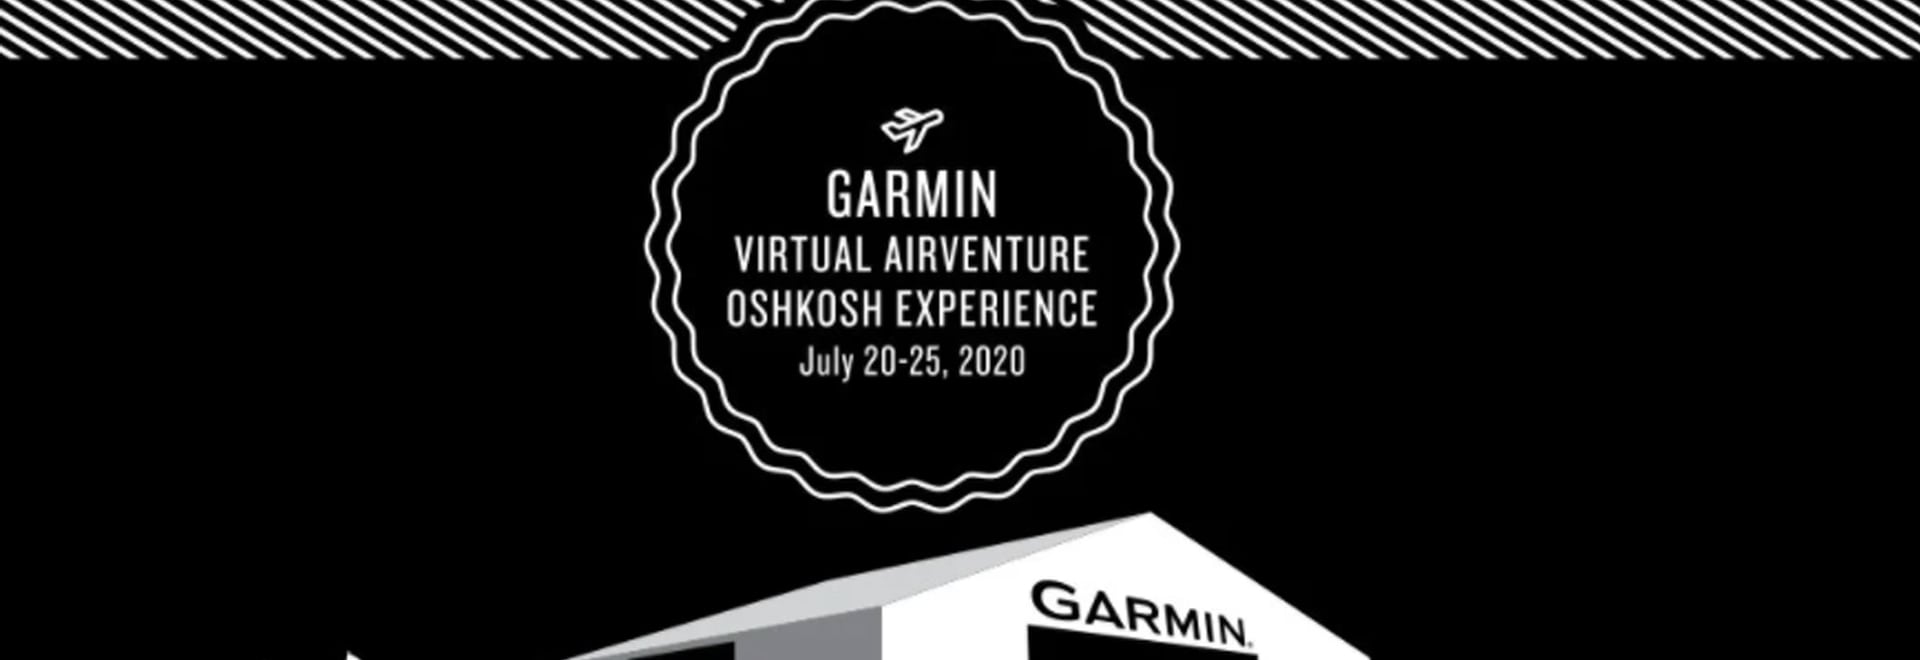 Join the party in Garmin's virtual hangar for at least one of the events sponsored for Spirit of Aviation Week 2020.